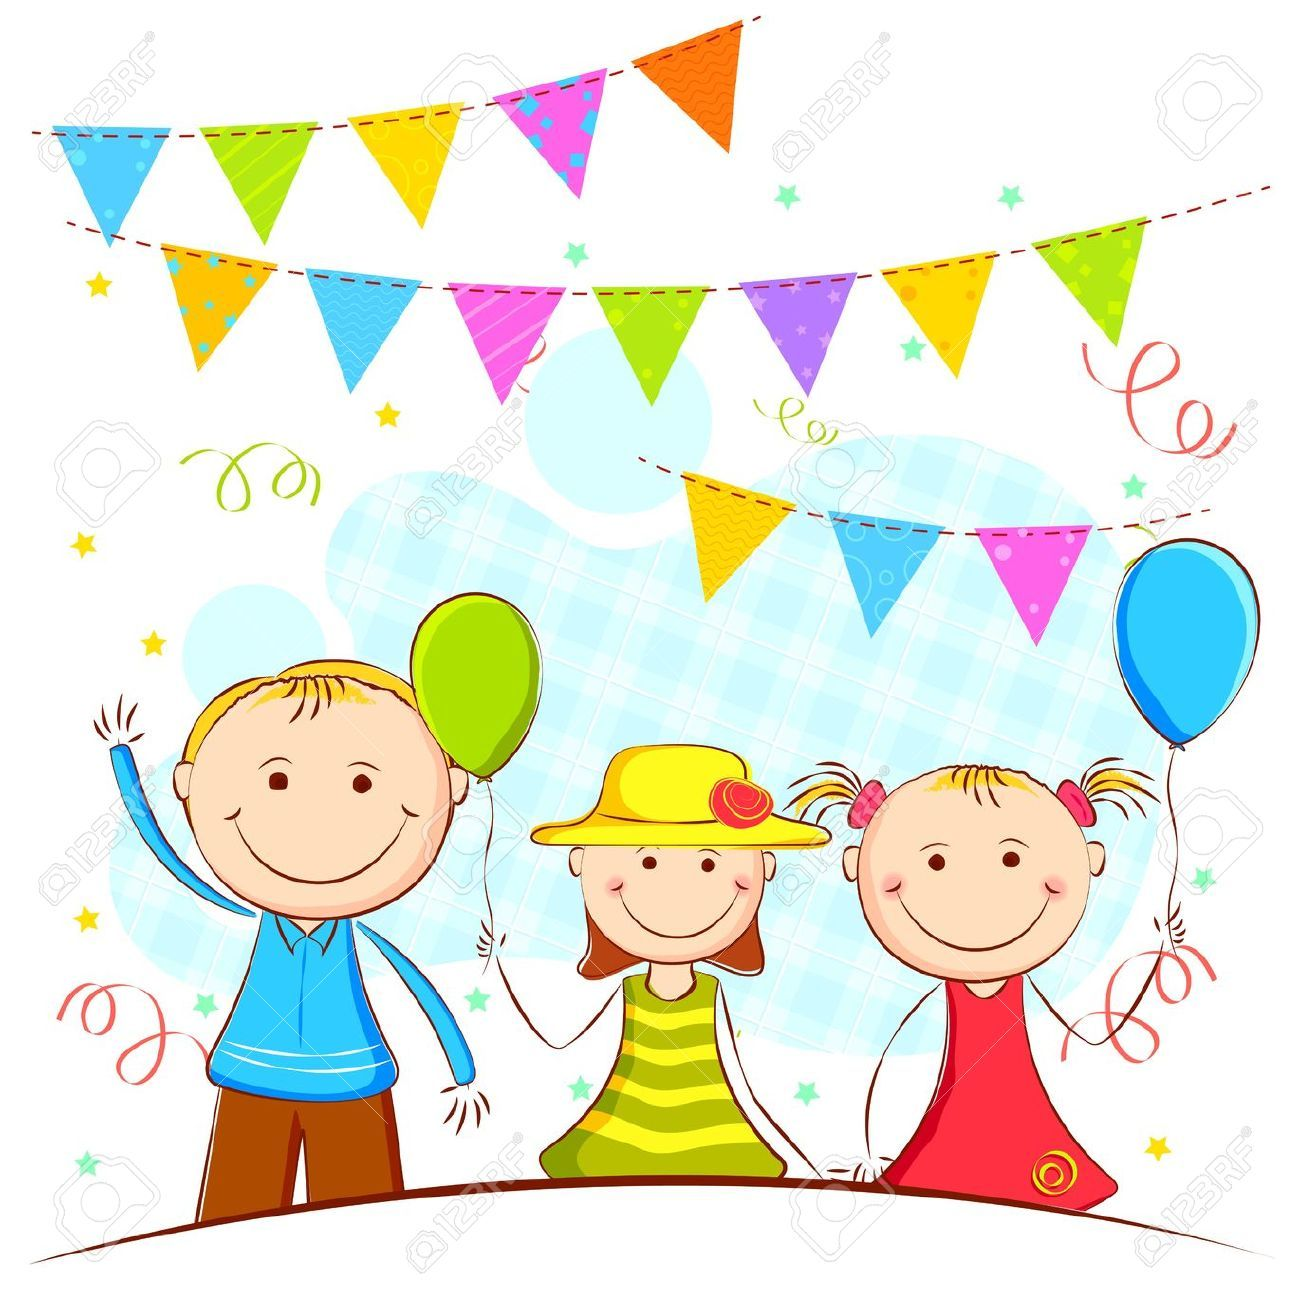 kids party clipart google zoeken s n f i in pinterest rh pinterest com party clip art free images party clip art borders